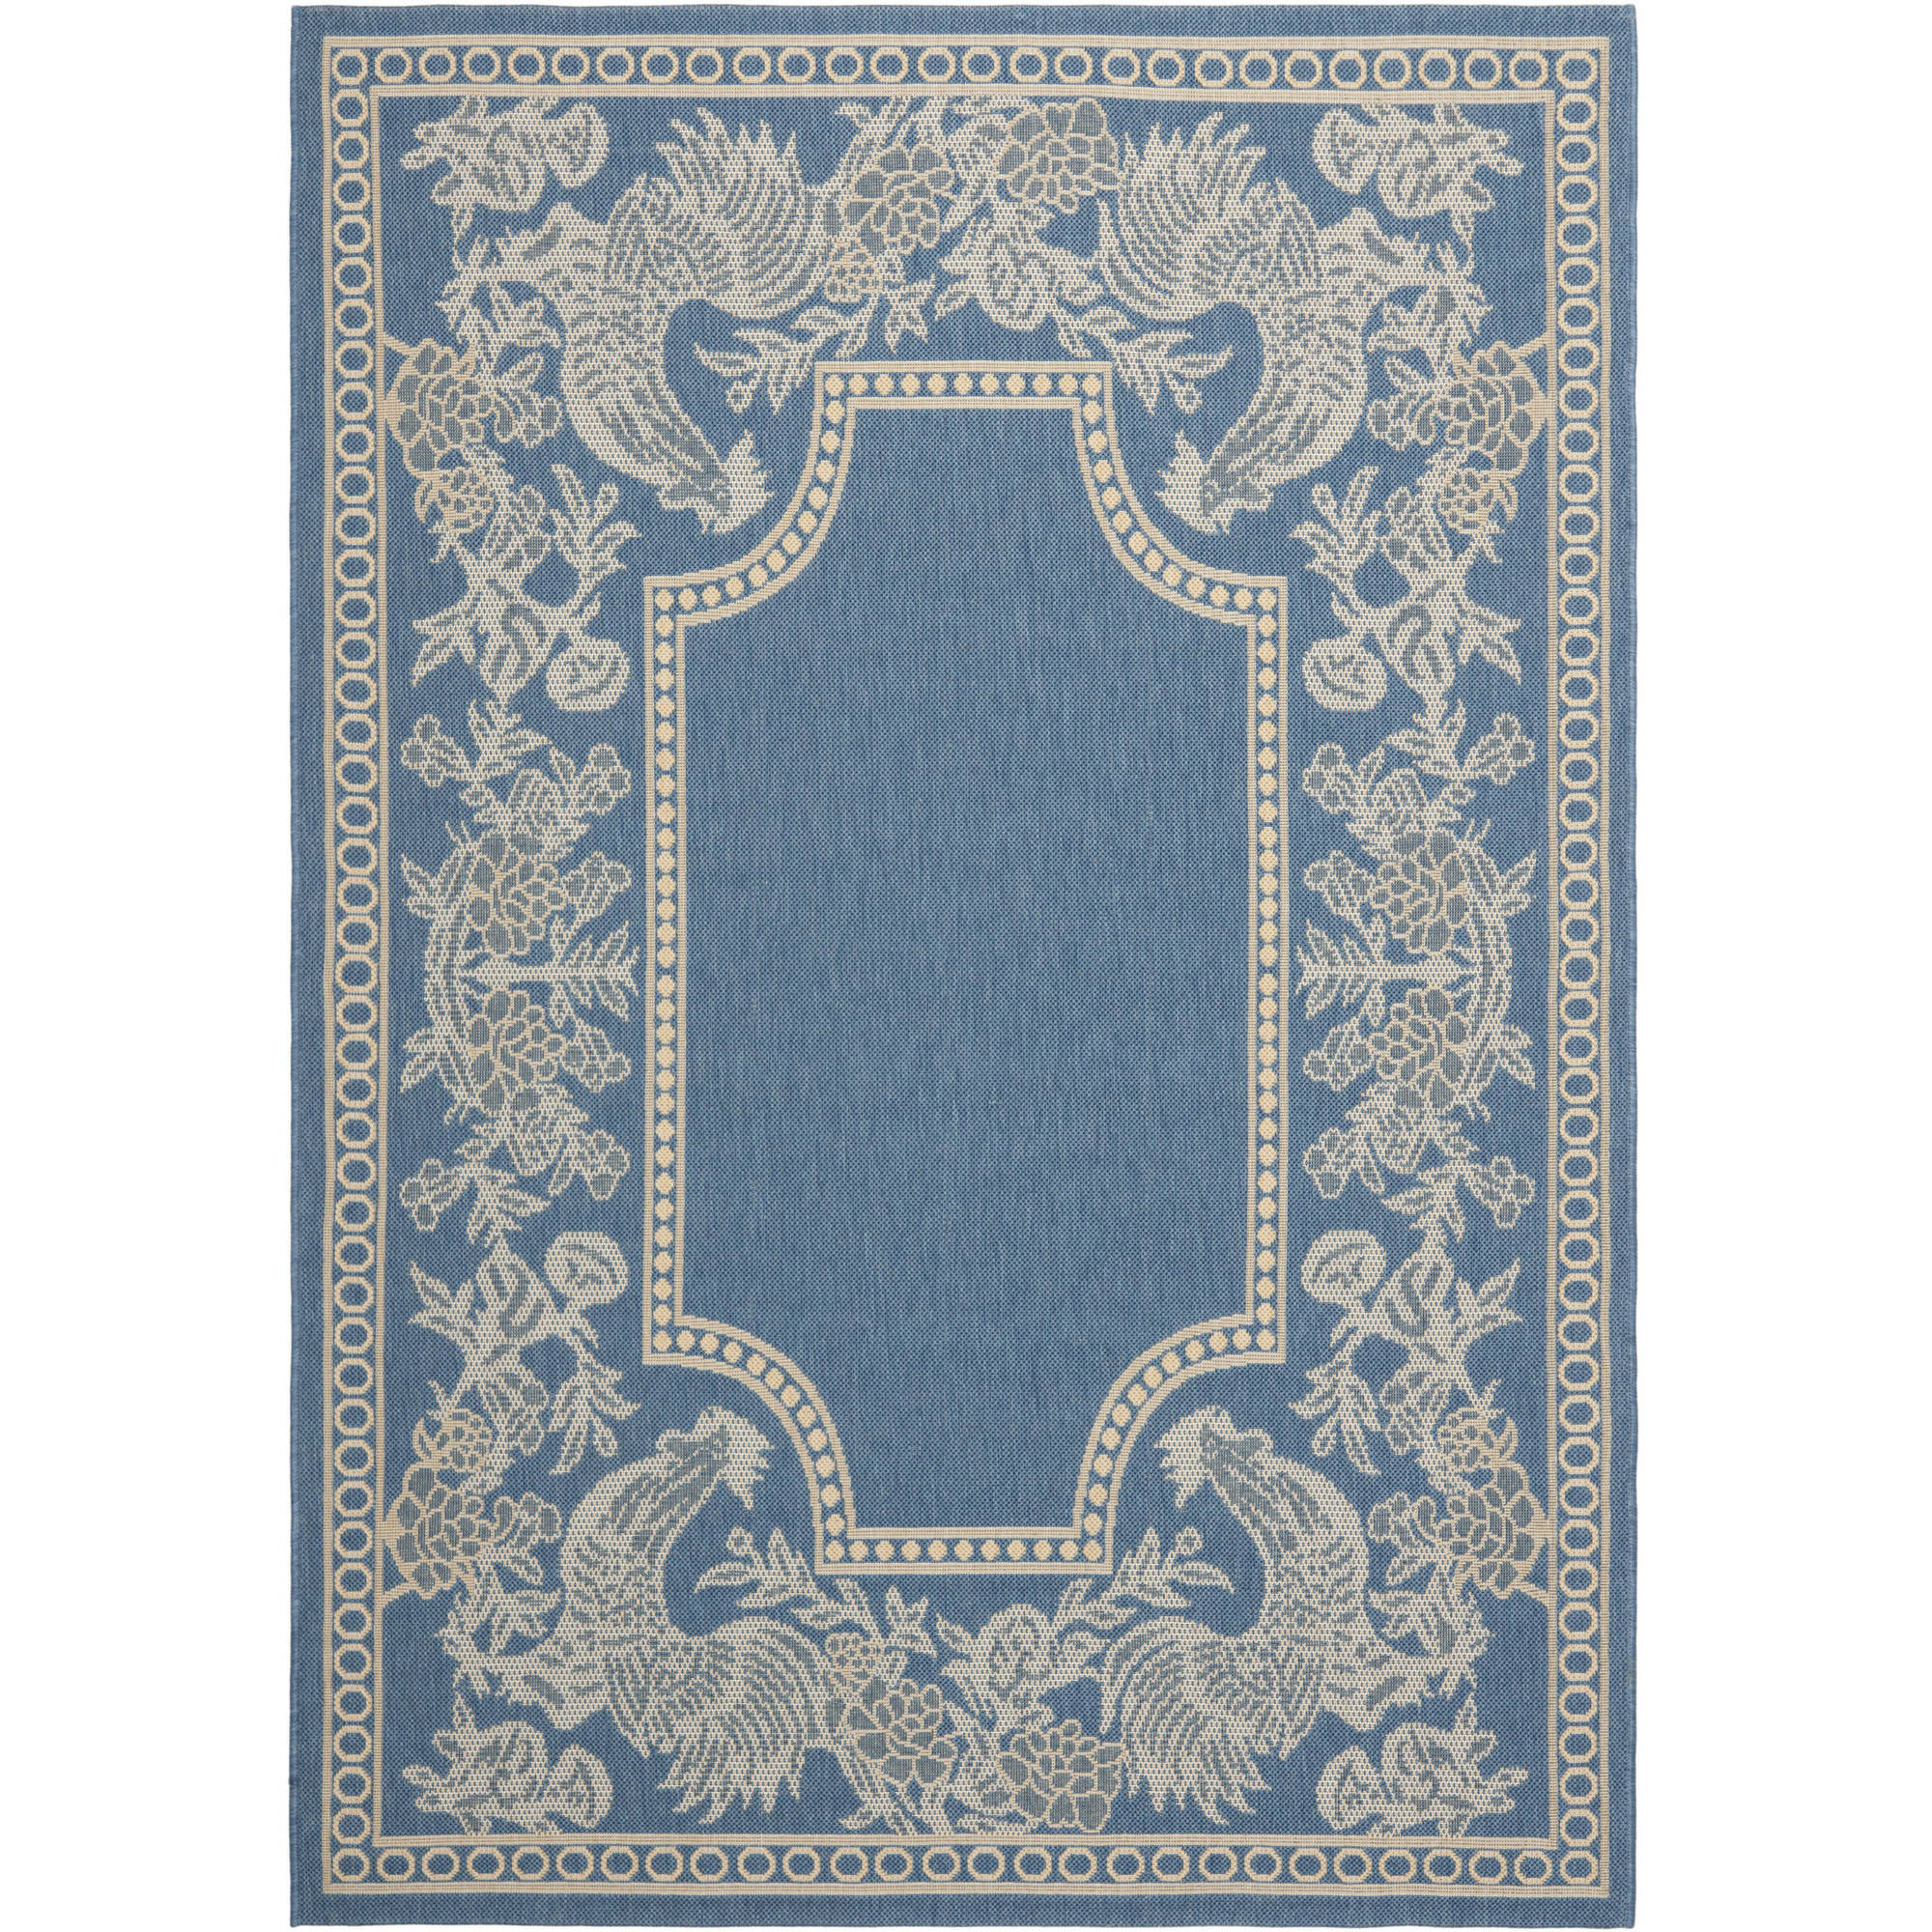 Safavieh Courtyard Claire Power-Loomed Indoor/Outdoor Area Rug or Runner